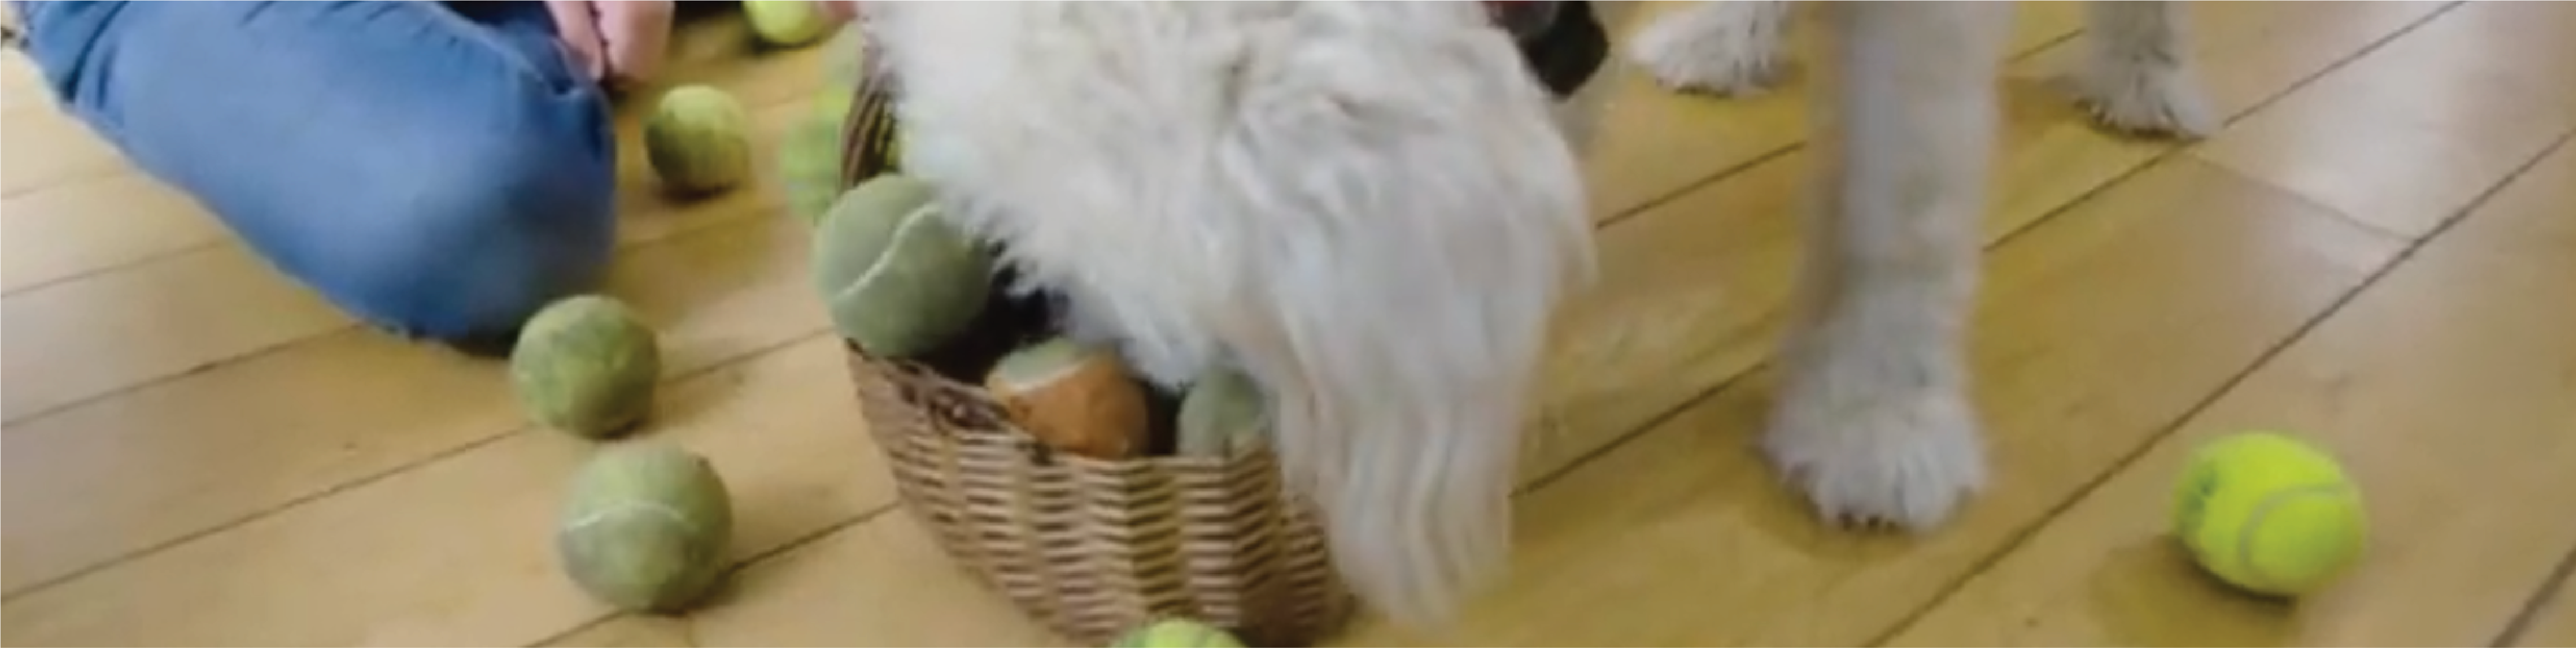 Dog finding a treat during a dog treat game